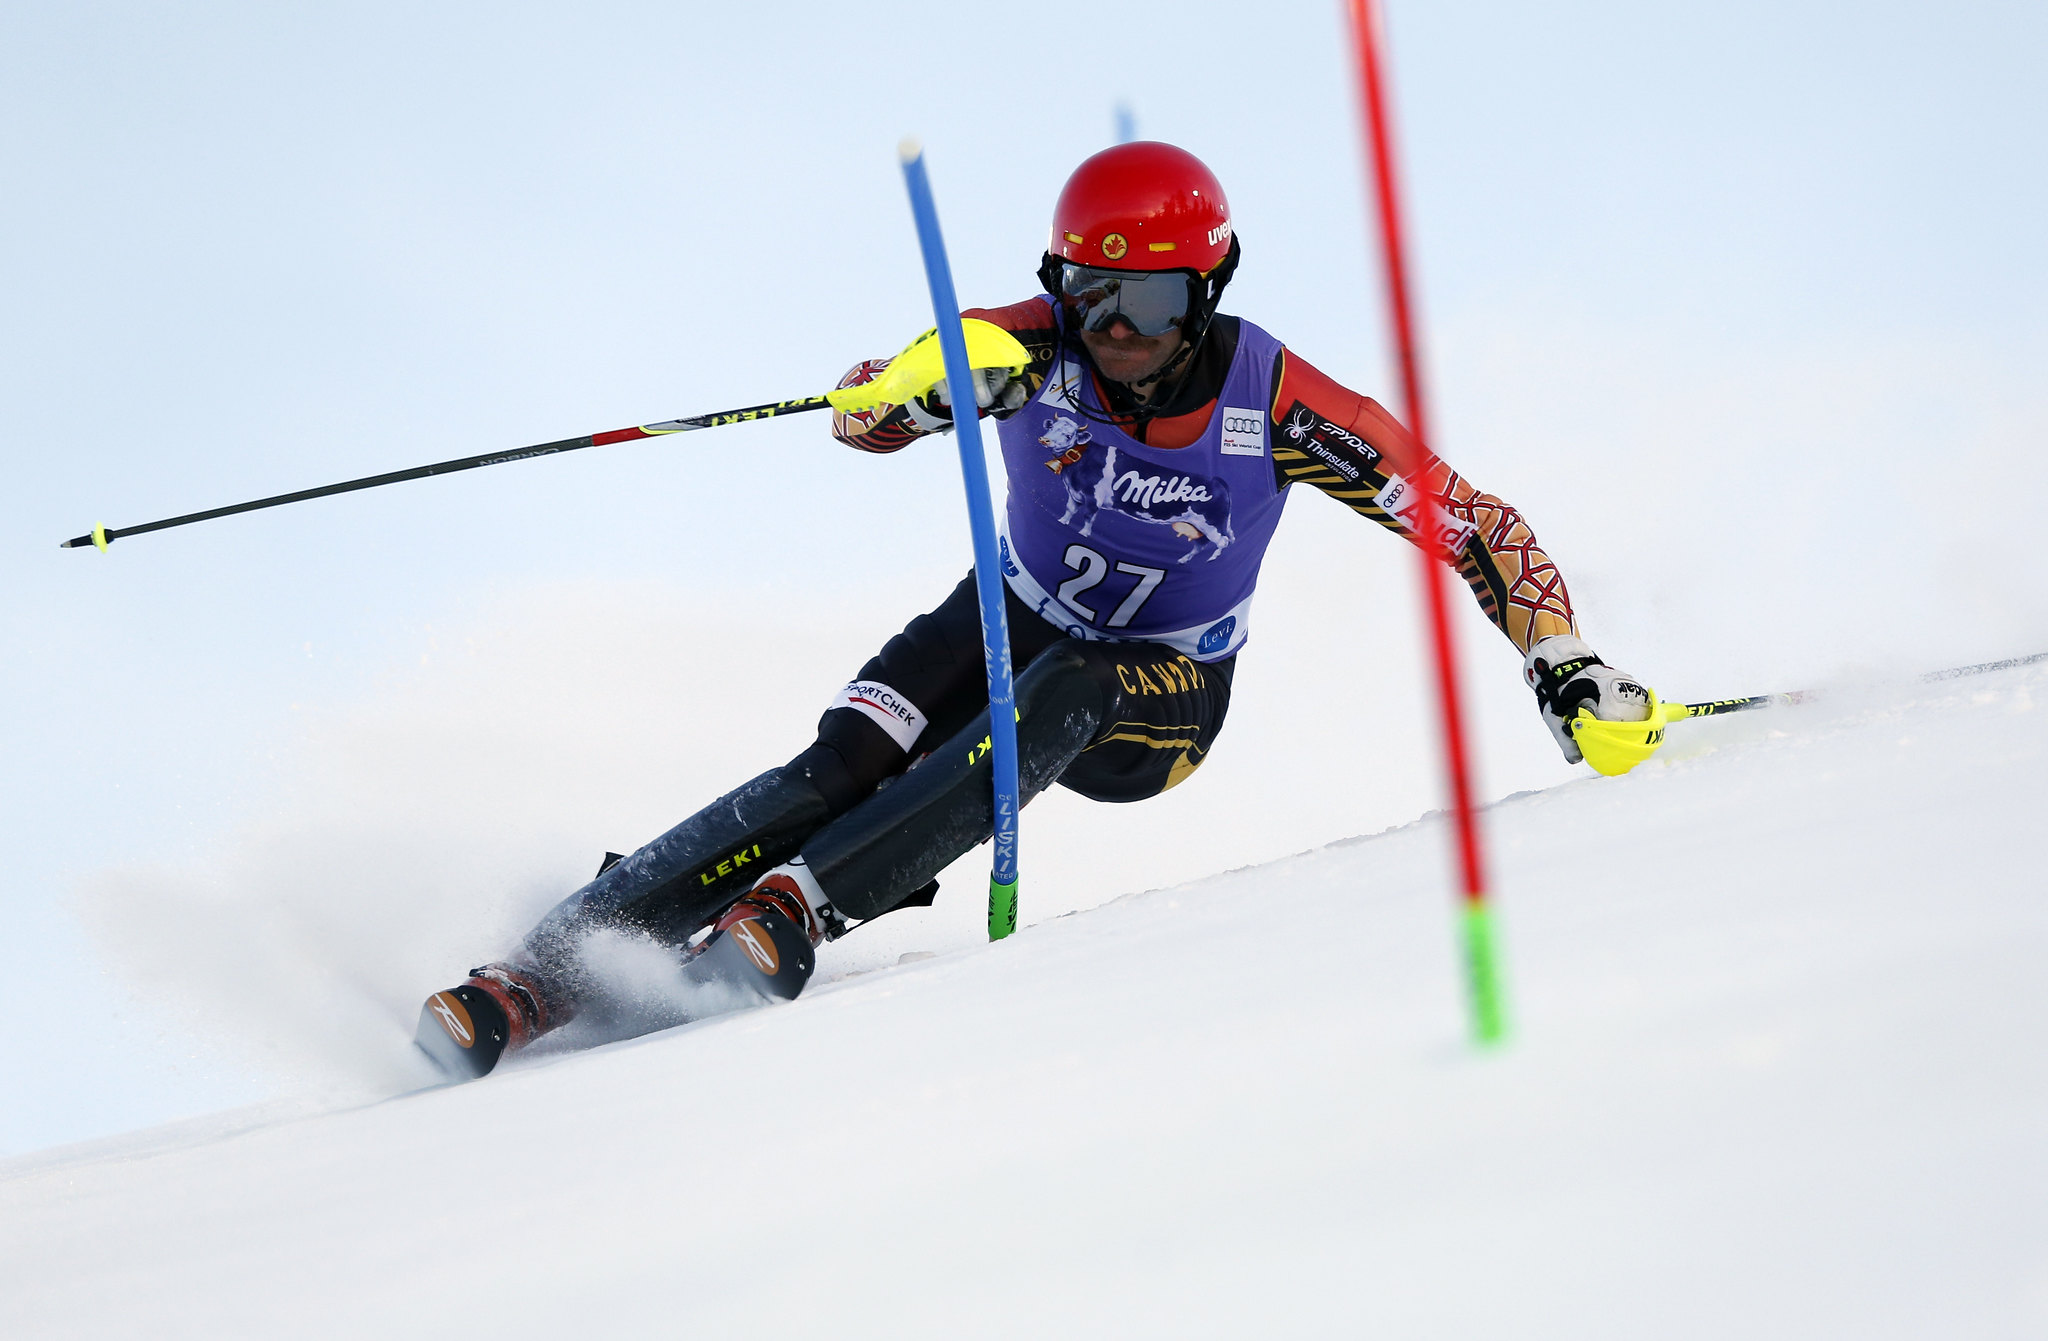 Janyk enroute to a 20th place finish in Levi, Finland.